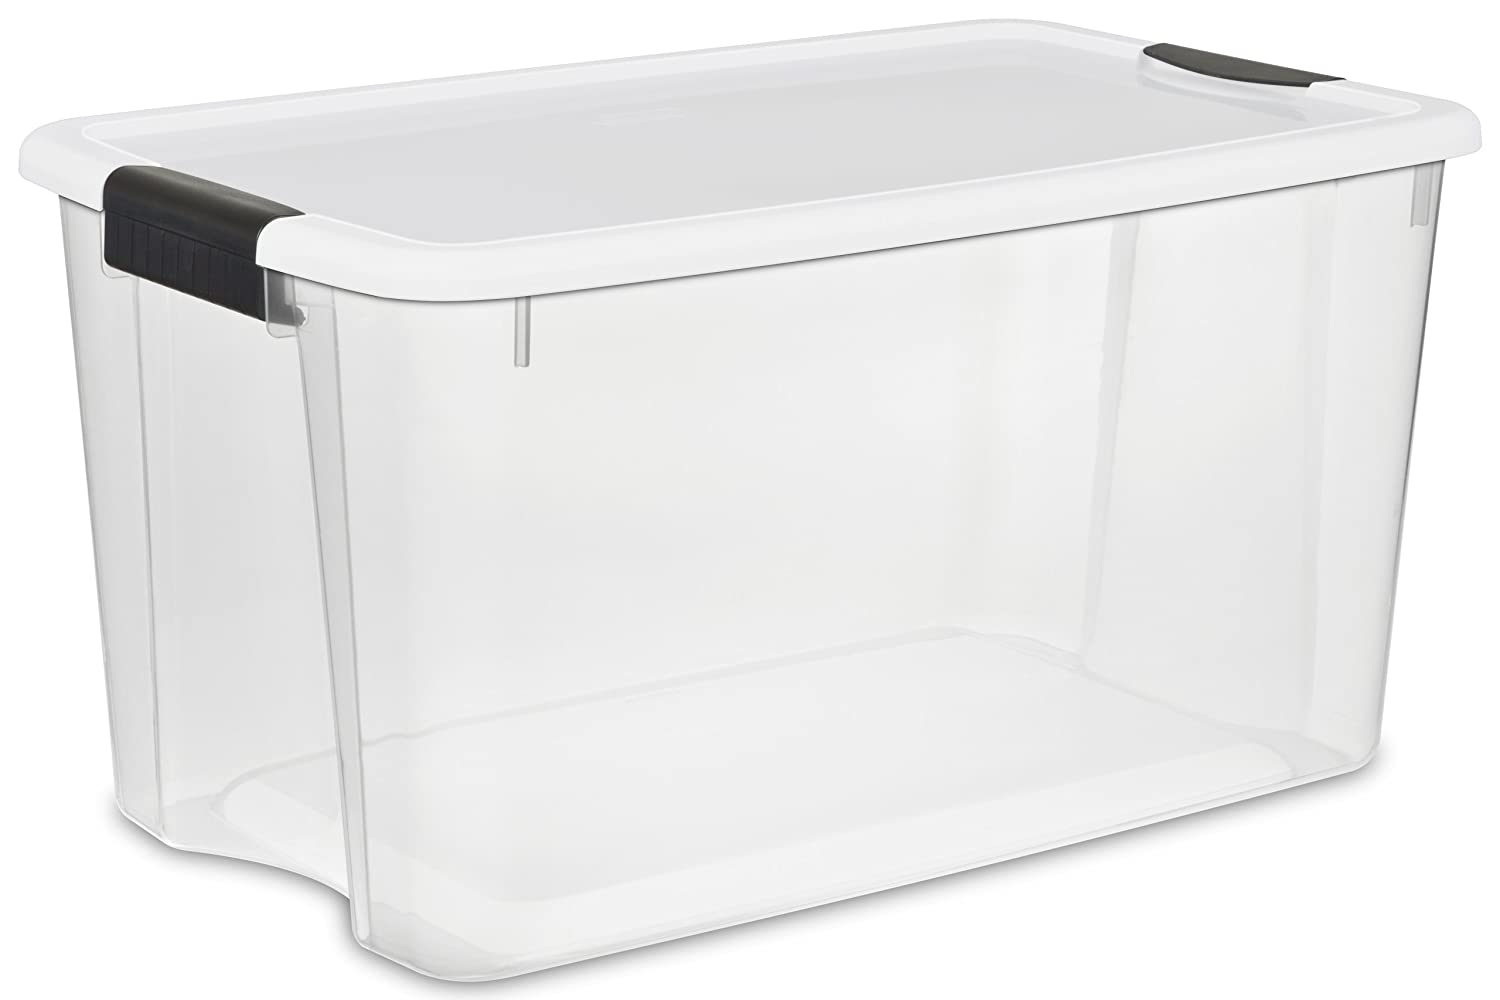 Craft supply storage containers - Amazon Com Sterilite 19889804 70 Quart 66 Liter Ultra Latch Box Clear With A White Lid And Black Latches 4 Pack Home Kitchen